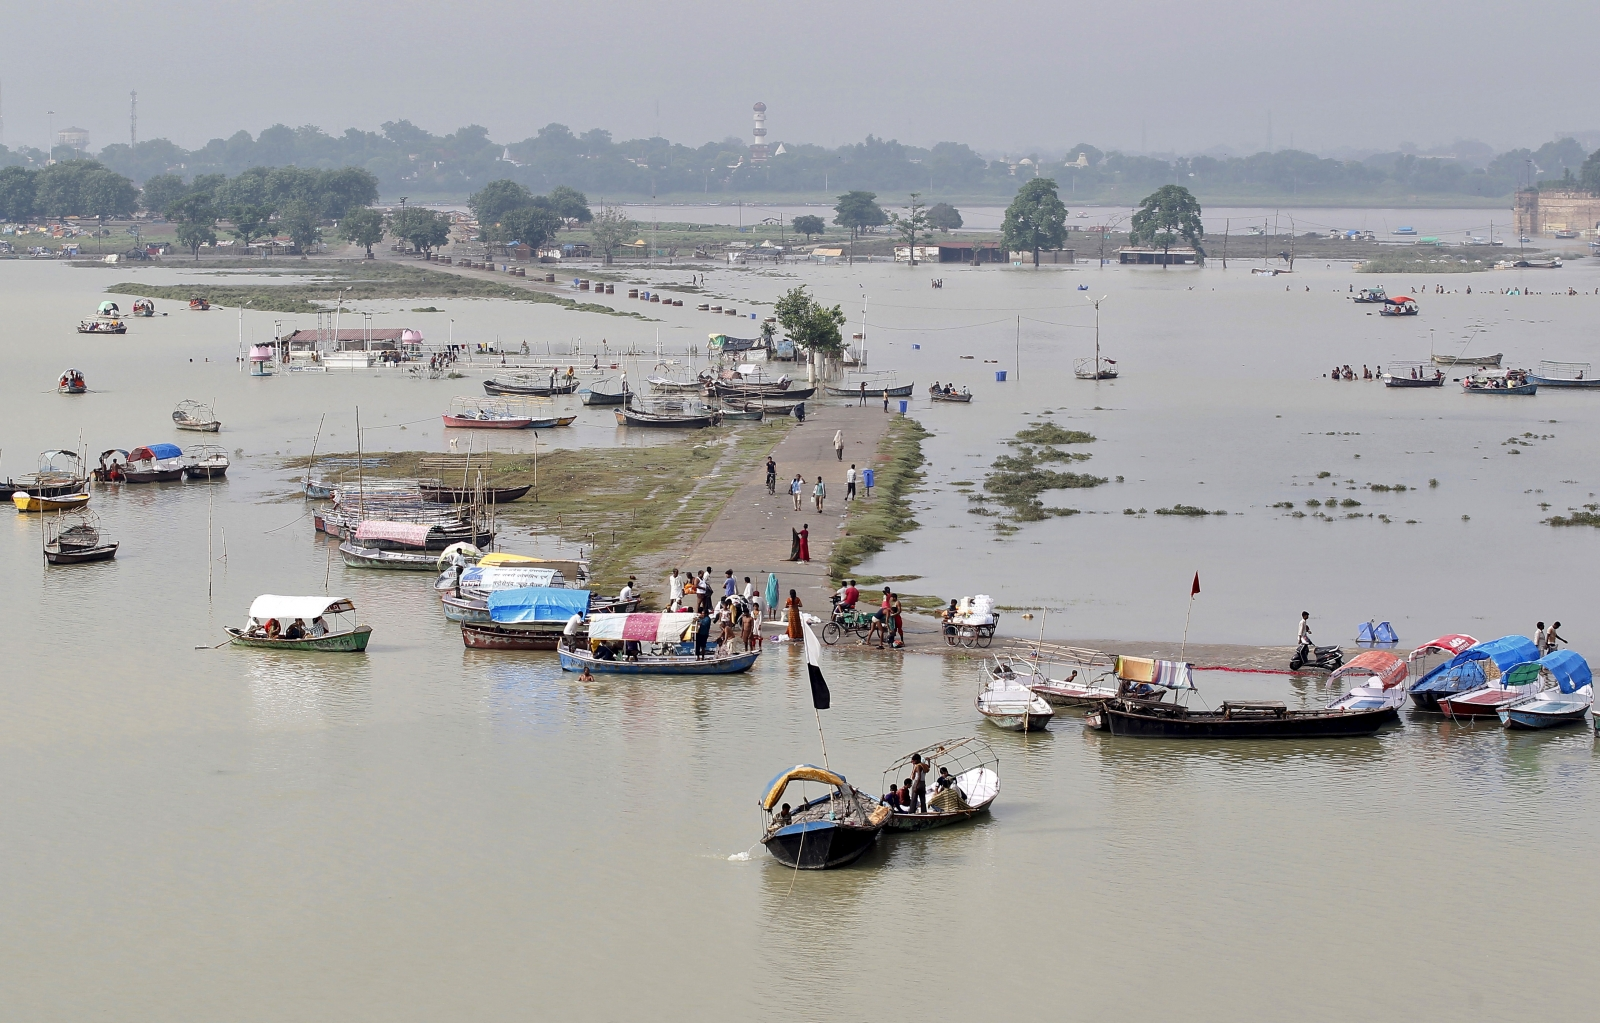 A view of a flooded road on the banks of river Ganga in Allahabad